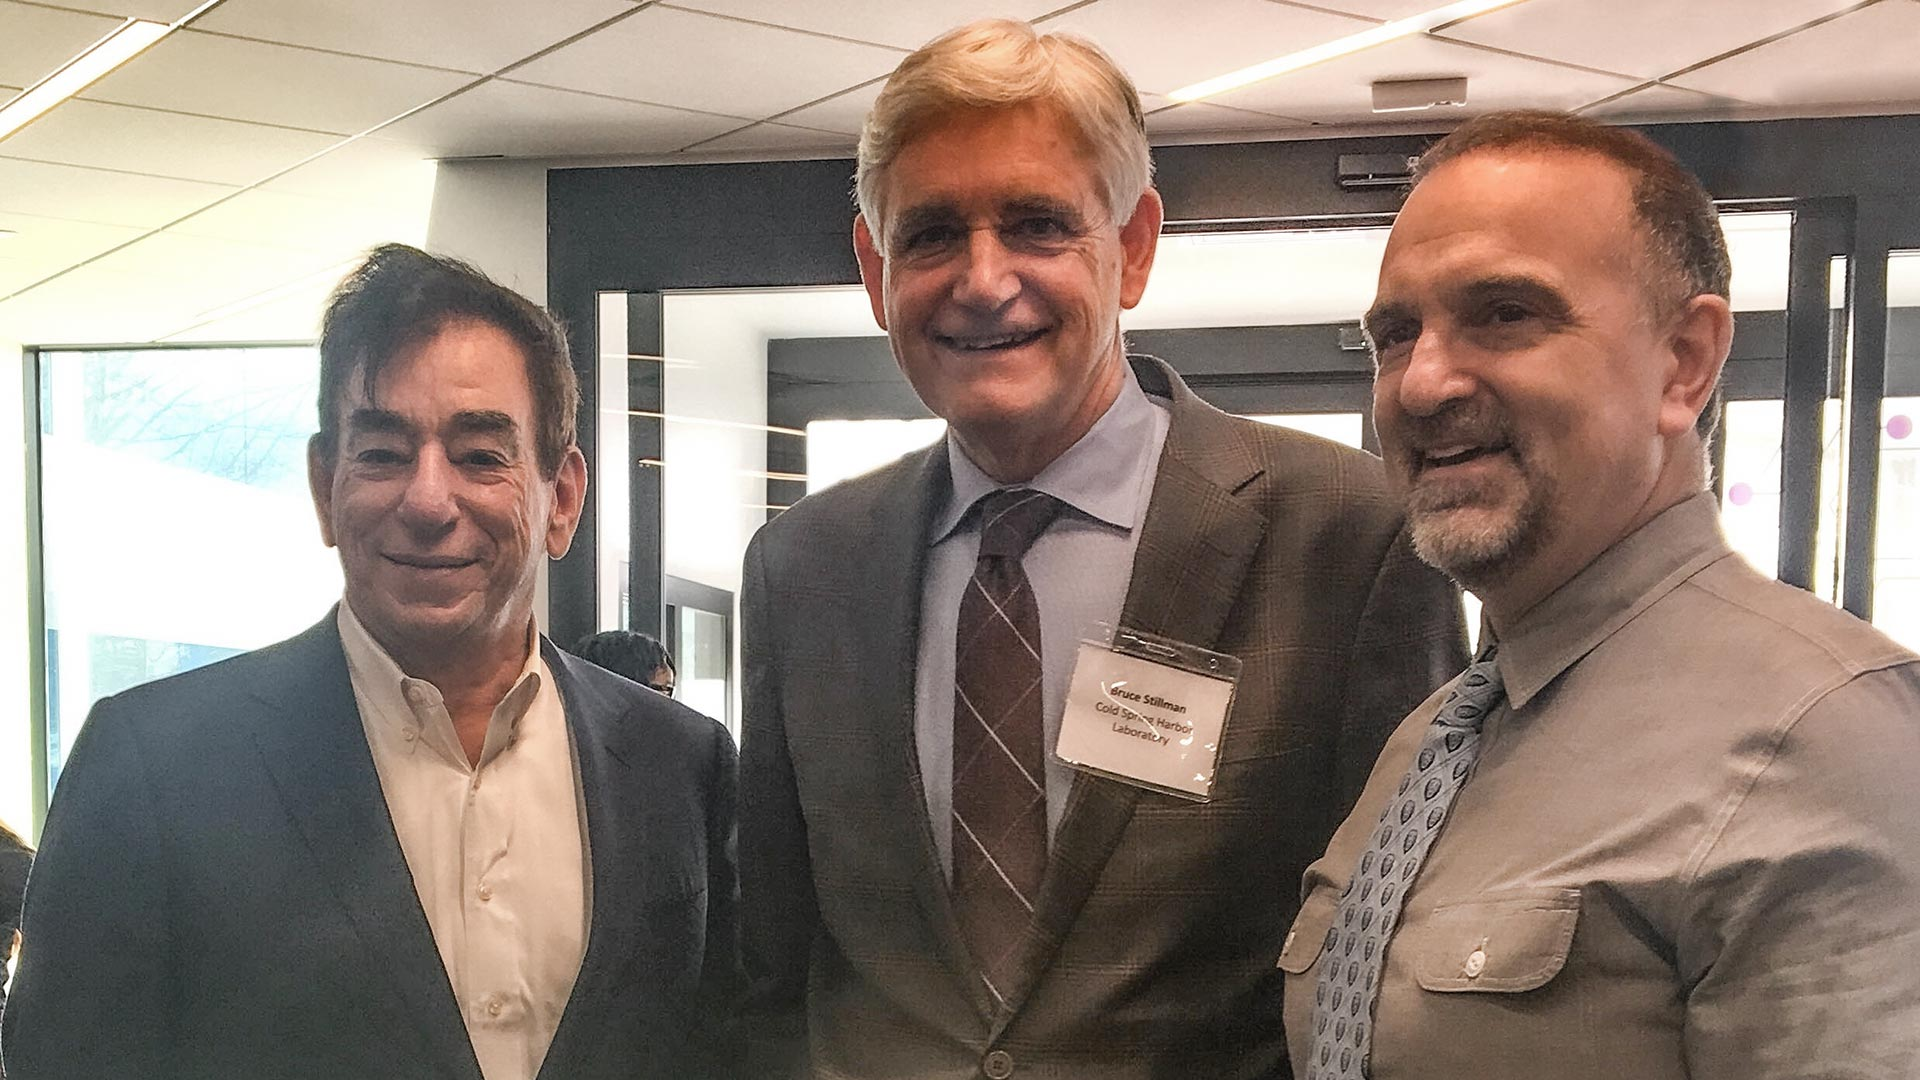 photo of Regeneron CEO Leonard Schleifer, CSHL President and CEO Bruce Stillman, and Regeneron Co-Founder, President and Chief Scientific Officer George D. Yancopoulos.